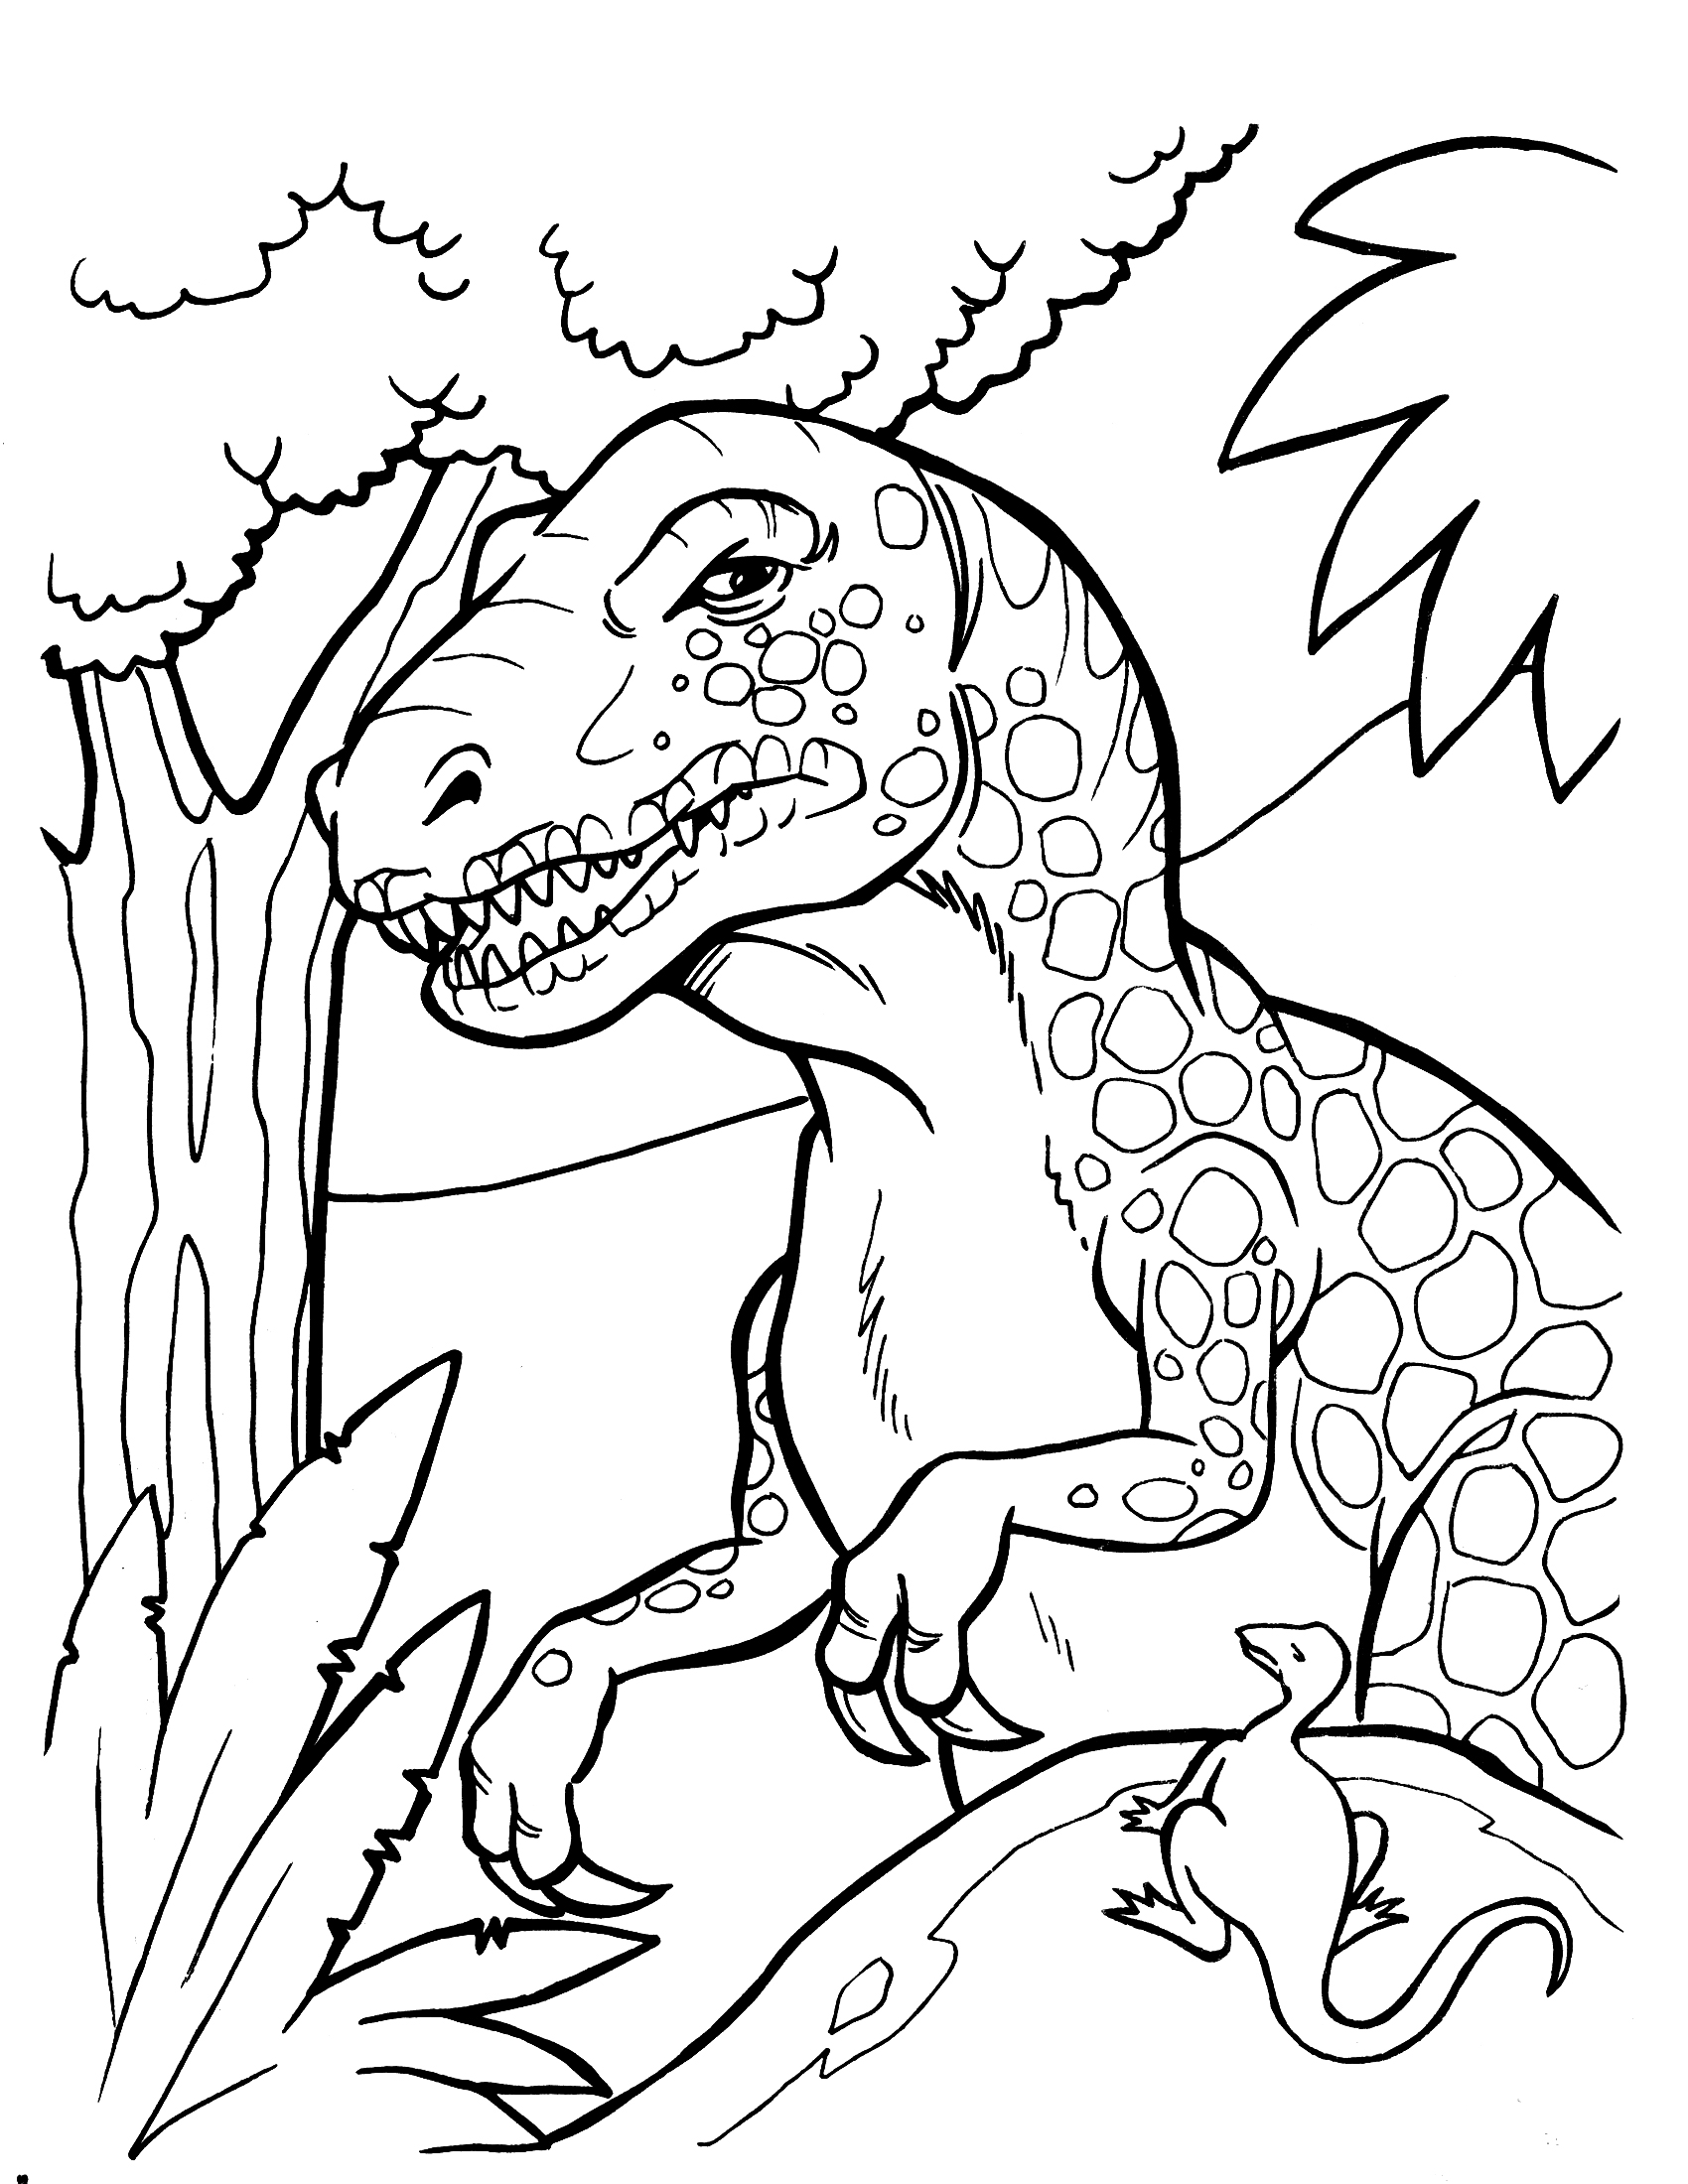 dinosaur printable pictures dinosaurs coloring pages collection free coloring sheets pictures printable dinosaur